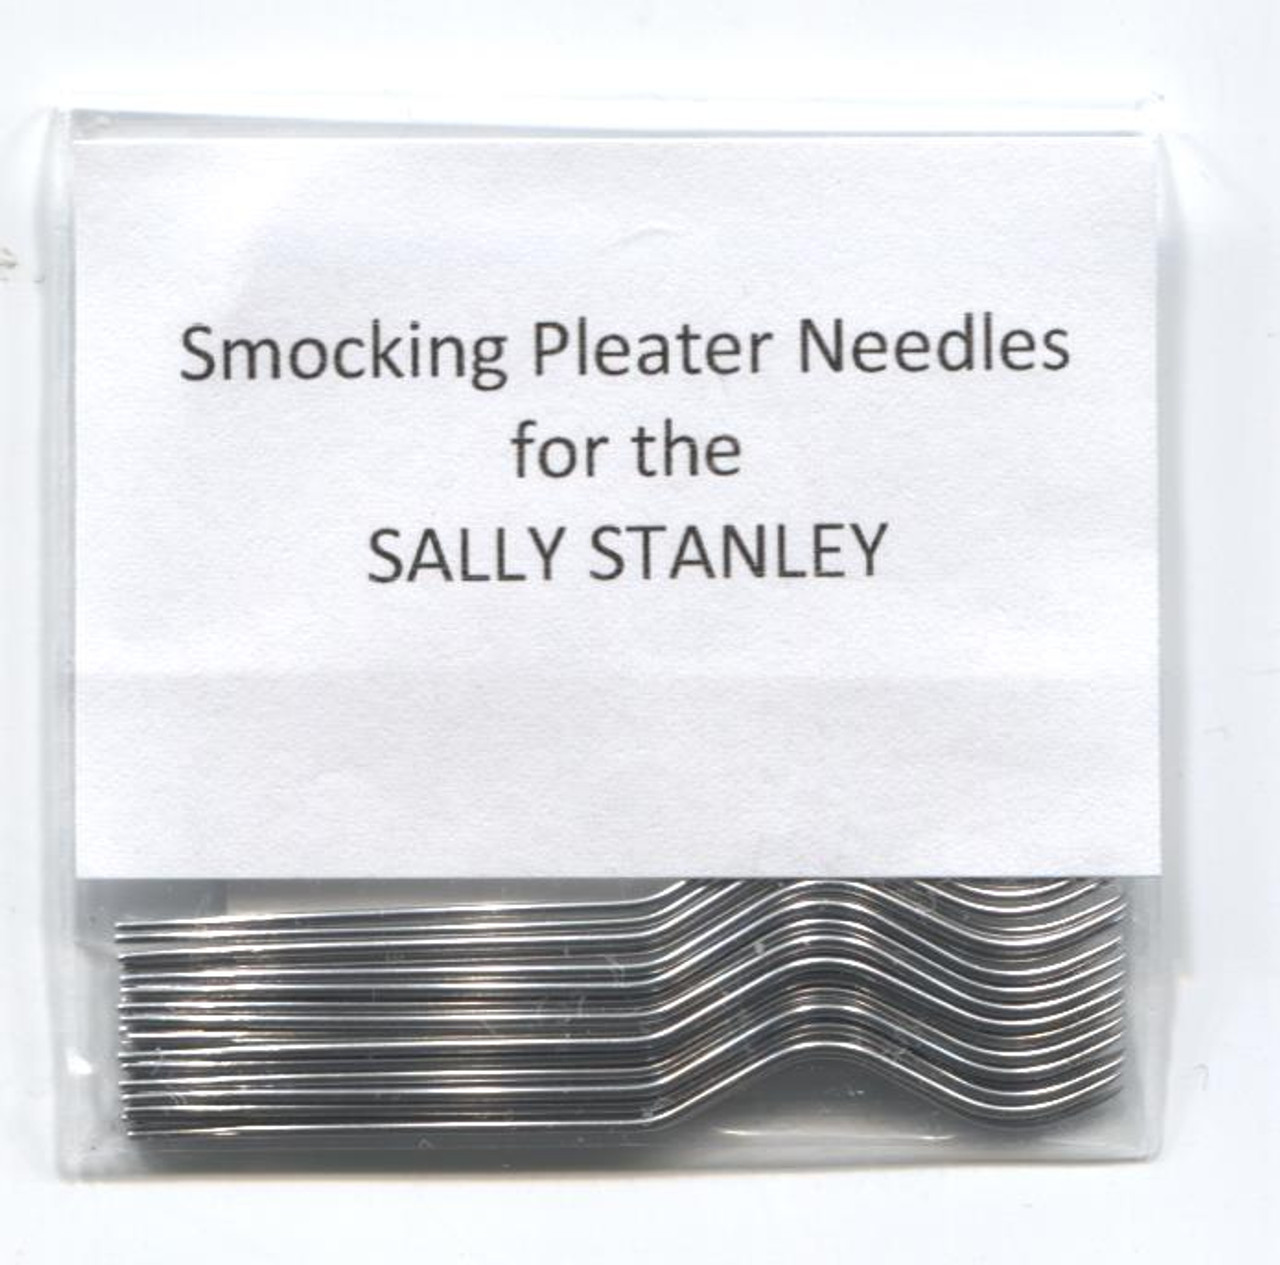 Smocking Pleater Needles suitable for the Sally Stanley Smocking Pleater - if in doubt please send one of your old needles for me to match, Pack of 24 Smocking pleater needles. See attached video on how to fit these needles - stock due 2022